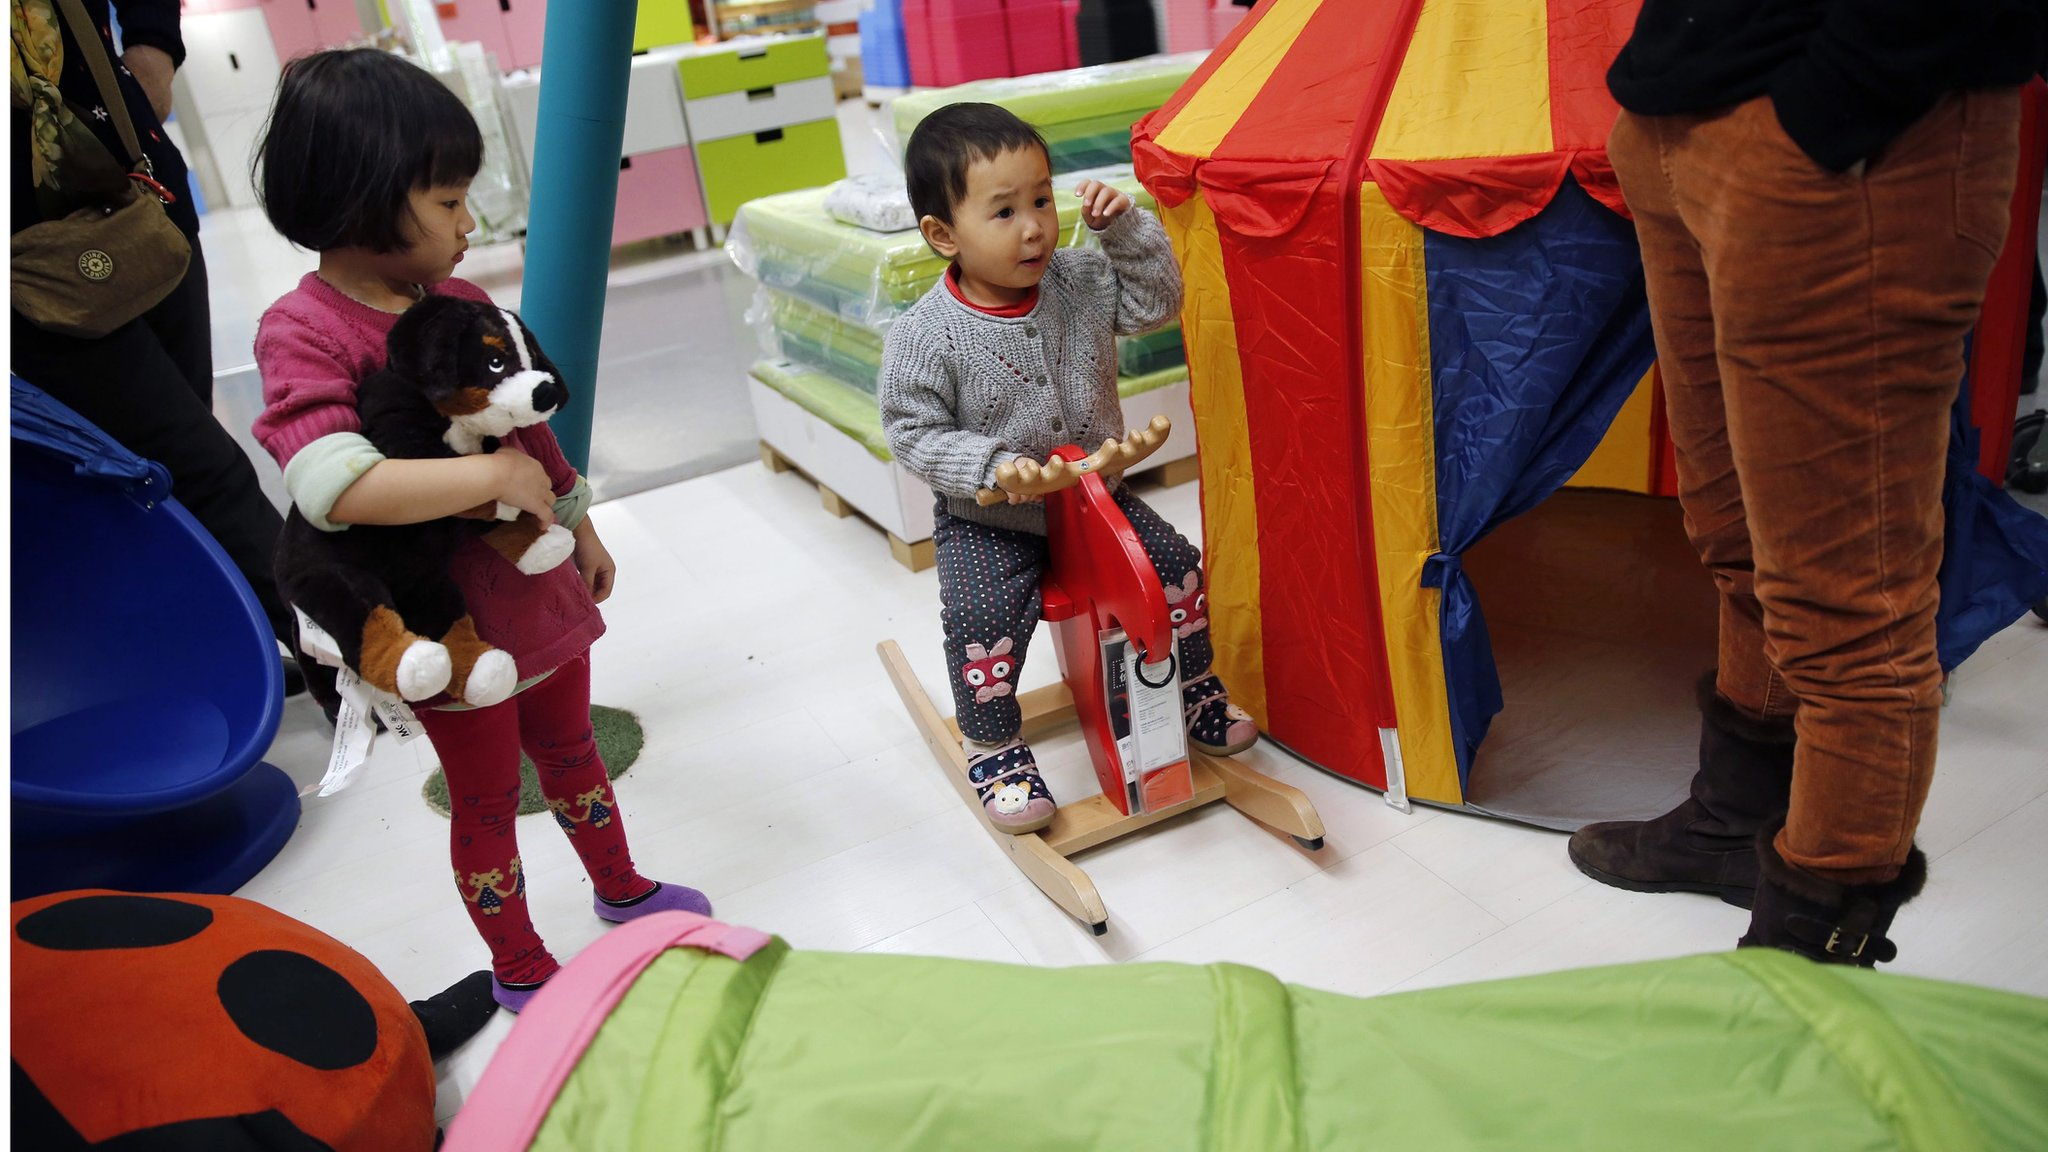 chinas one child policy should it be abolished essay China's ruling communist party has decided to abolish the country's one-child policy and allow all couples to have two children, the official xinhua news agency said.